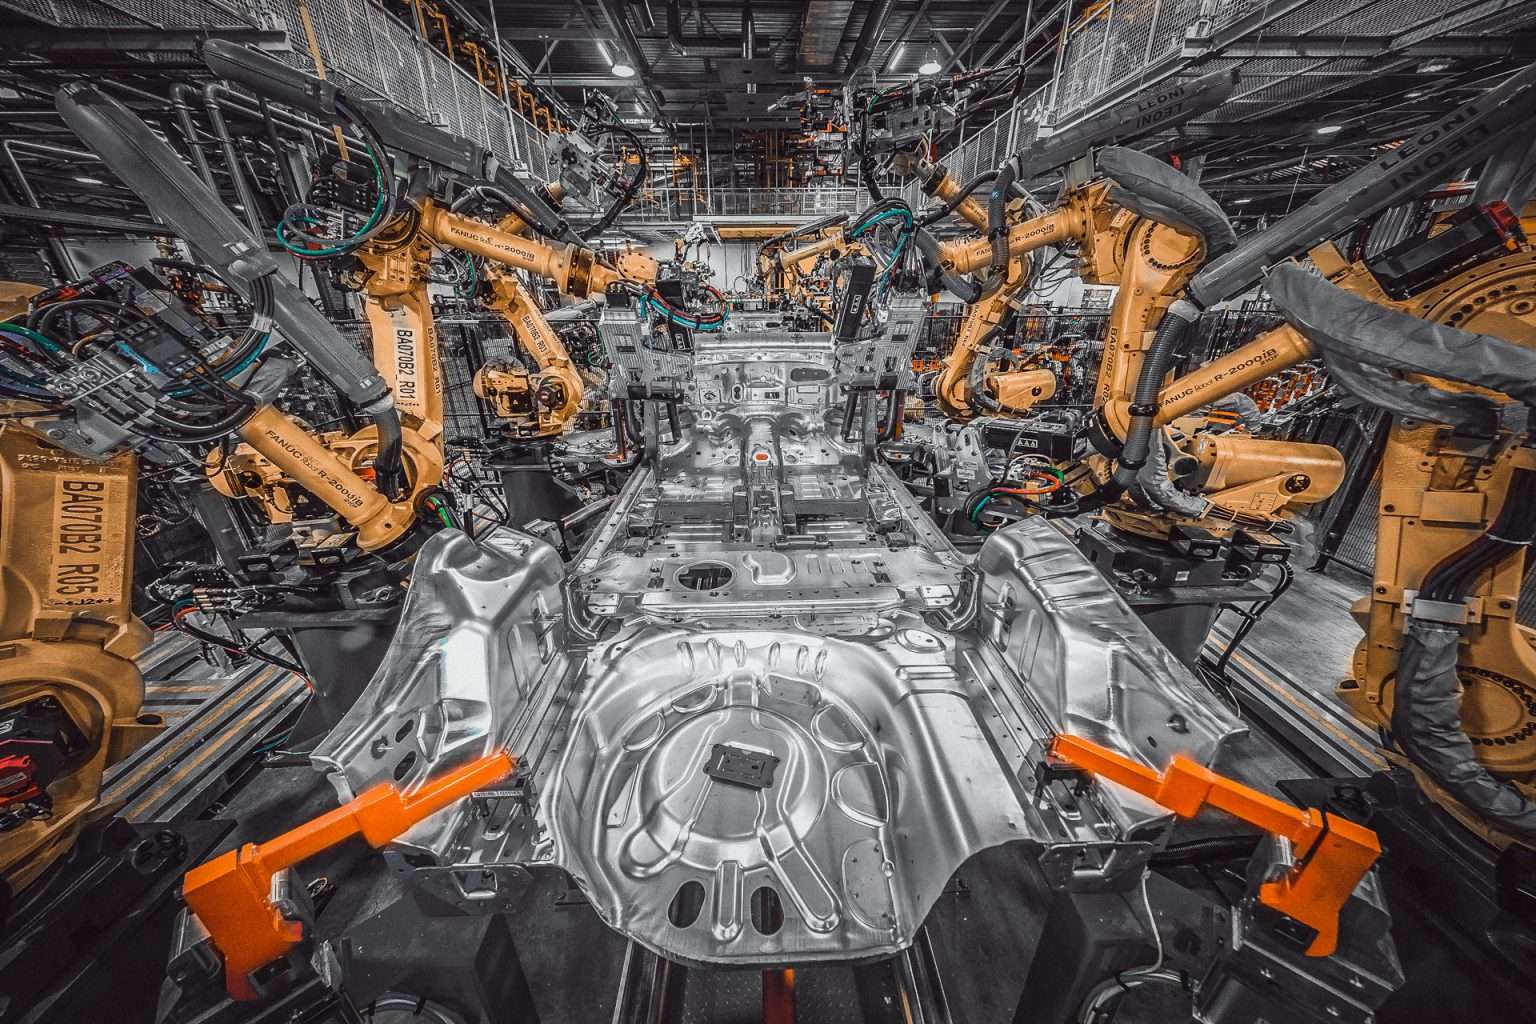 Valiant TMS Automotive Body in White Underbody Welding and Assembly Line